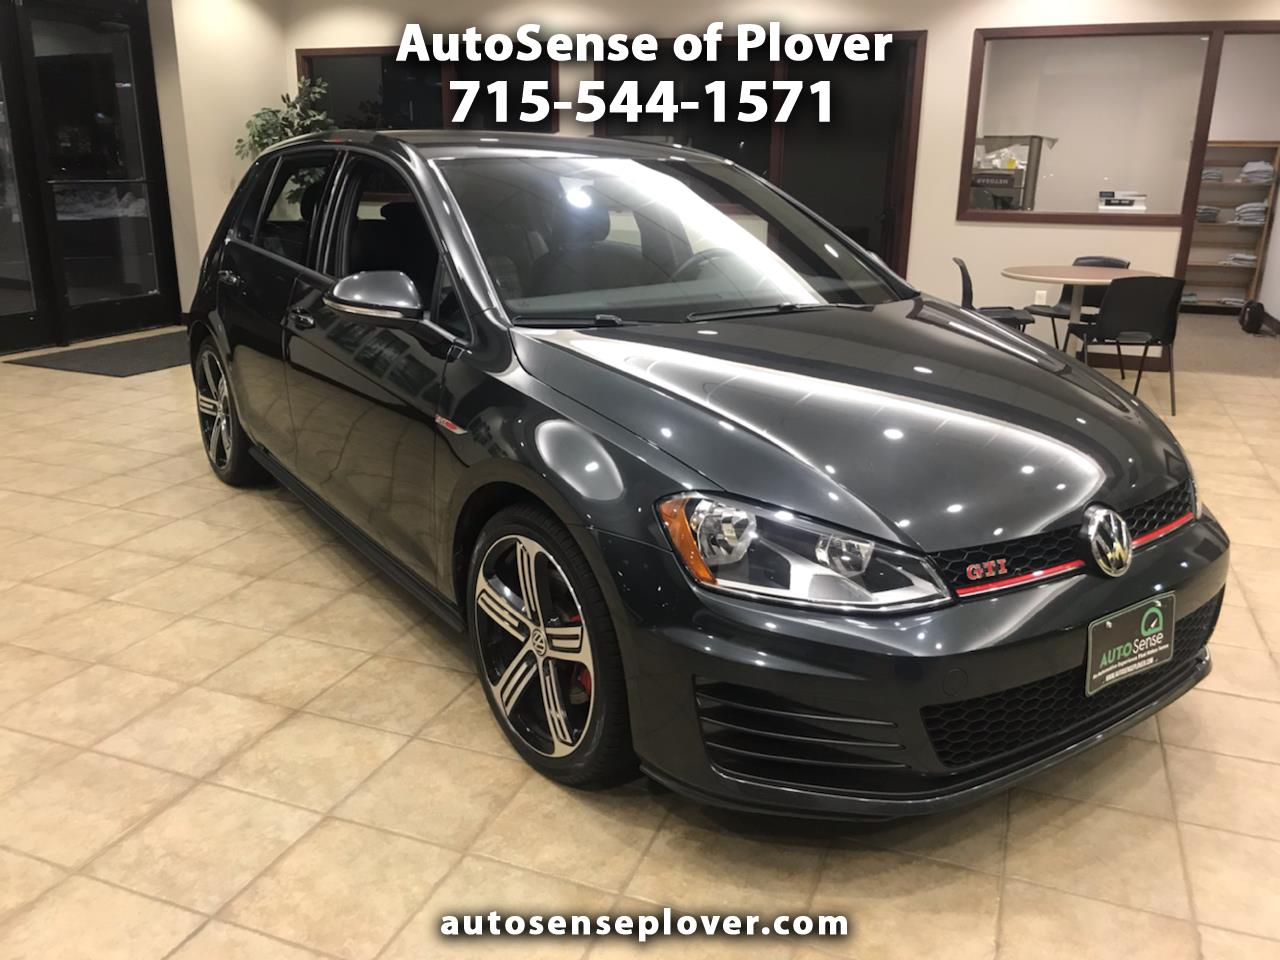 Volkswagen Golf GTI 2.0T 4-Door Autobahn Manual 2017